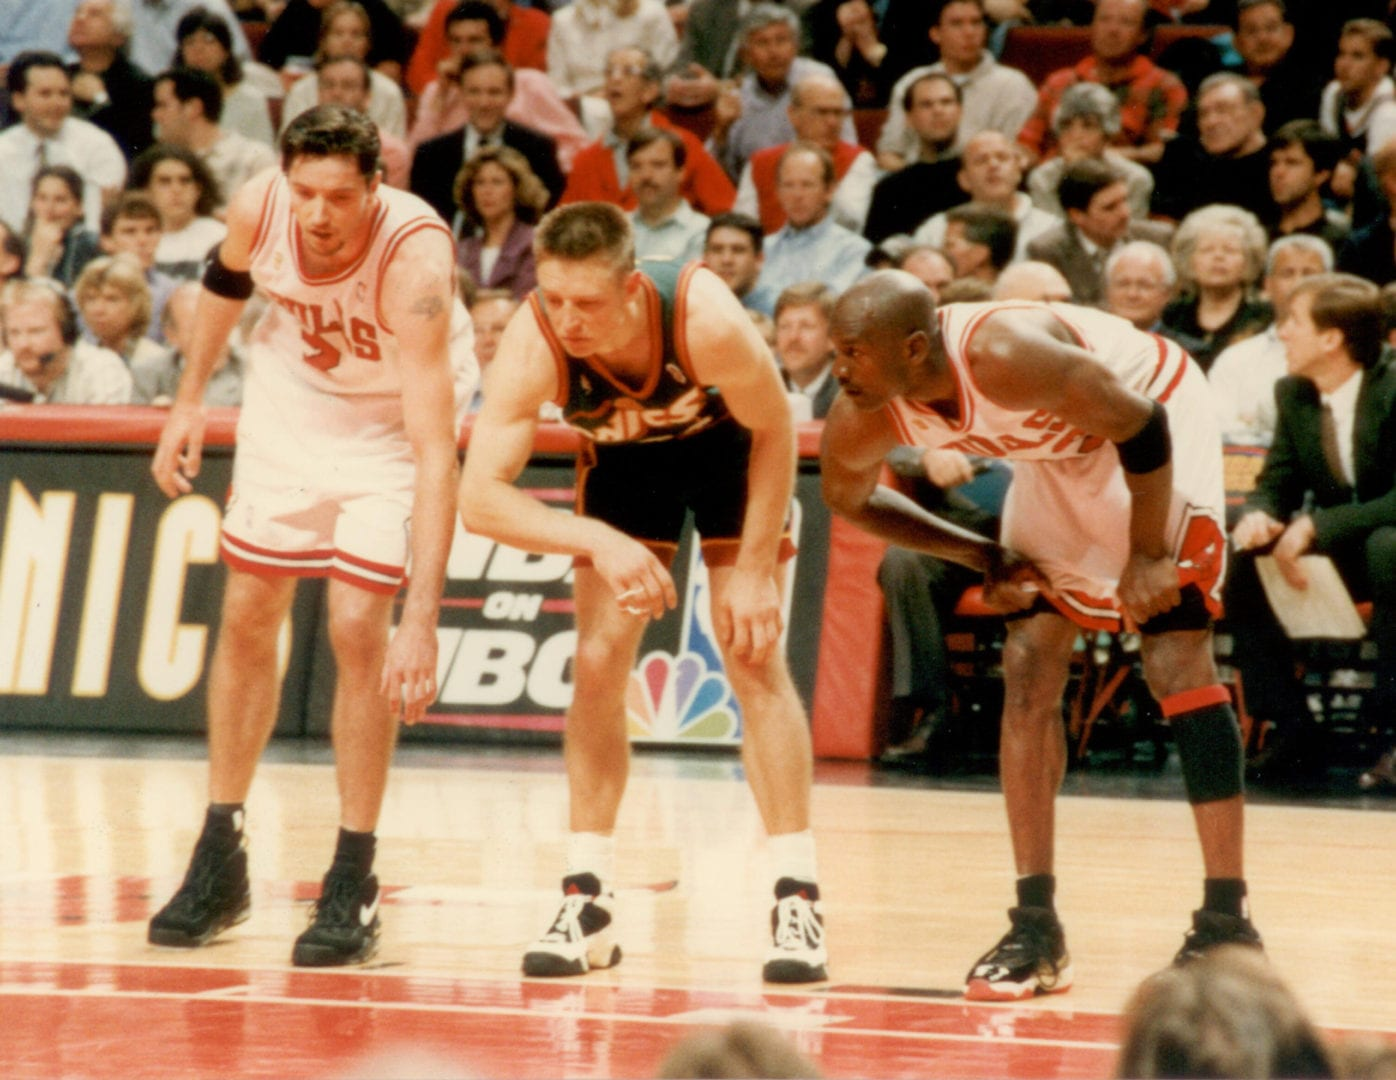 Three players lookin at the center of the court